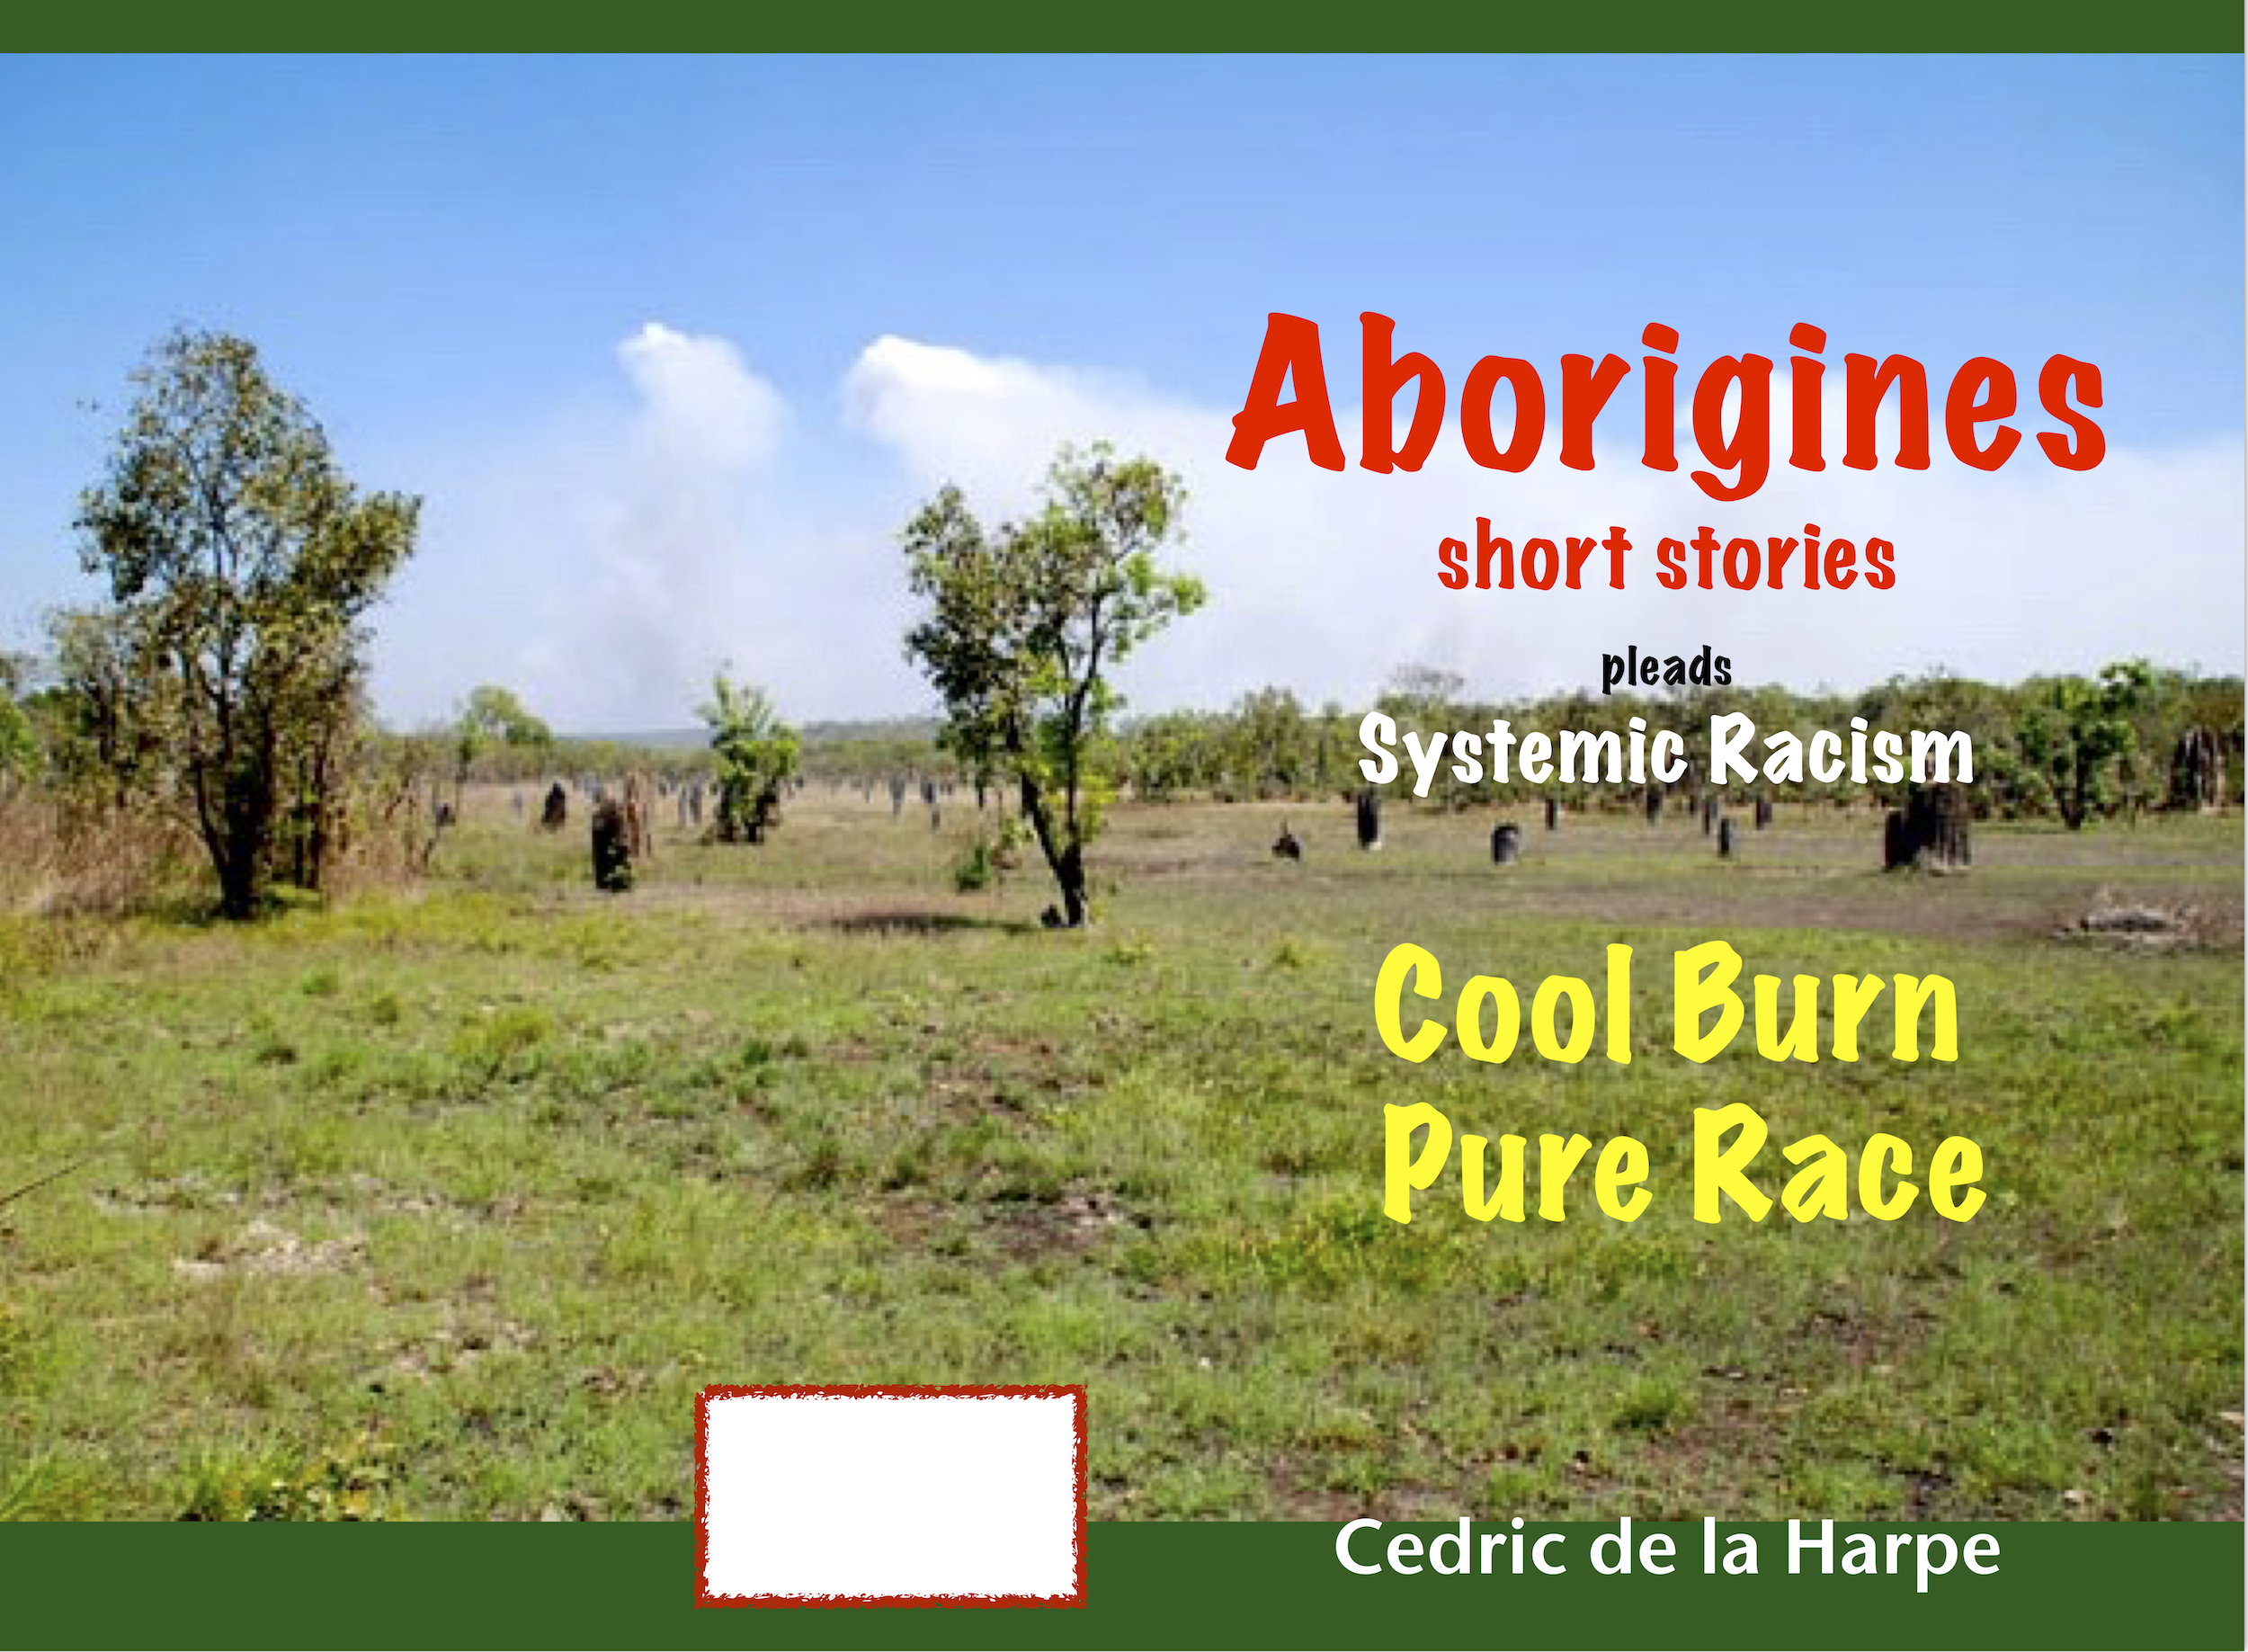 Aborigines Short Stories is Responsible Travel